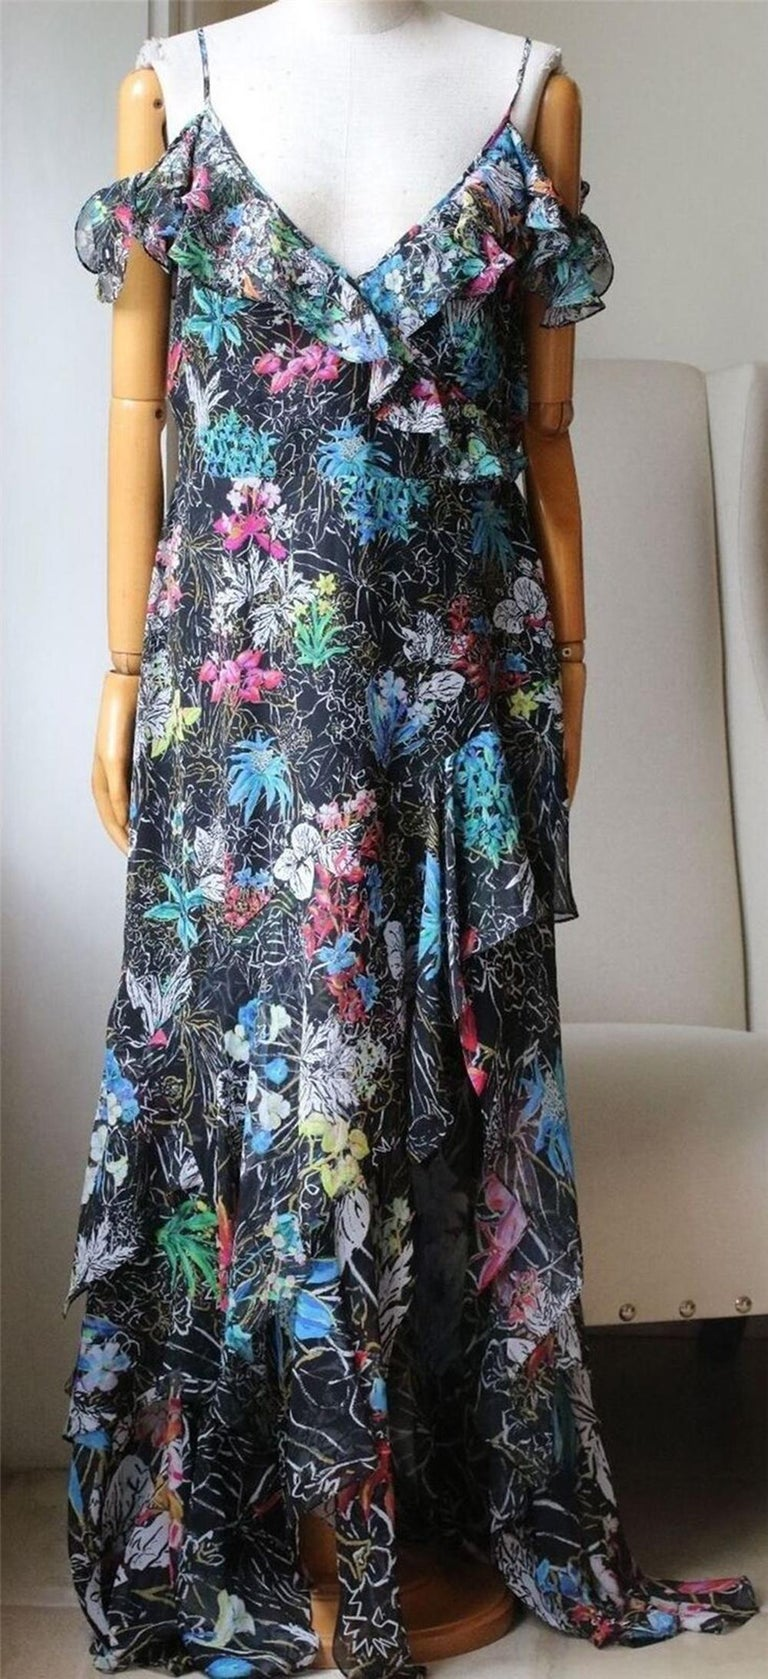 Printed with a dynamic, high-contrast design. Peter Pilotto's silk georgette dress has an evocative feel. Sleeveless for comfortable wear, this maxi-length style comes with ruffled trim at the bust and hem for feminine effect. 100% Silk.   Size: UK